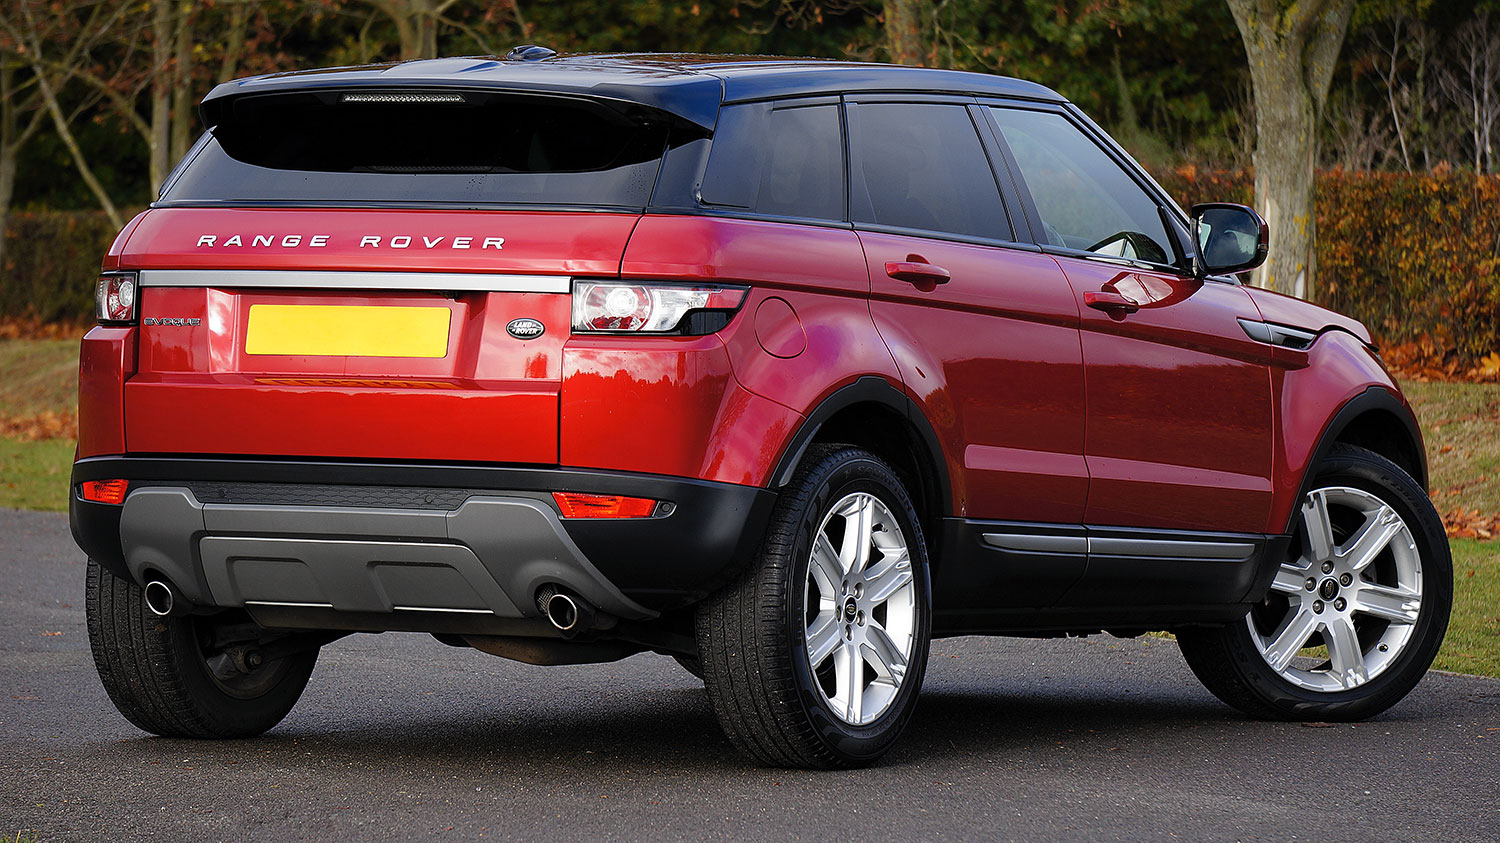 Range Rover Exhausts